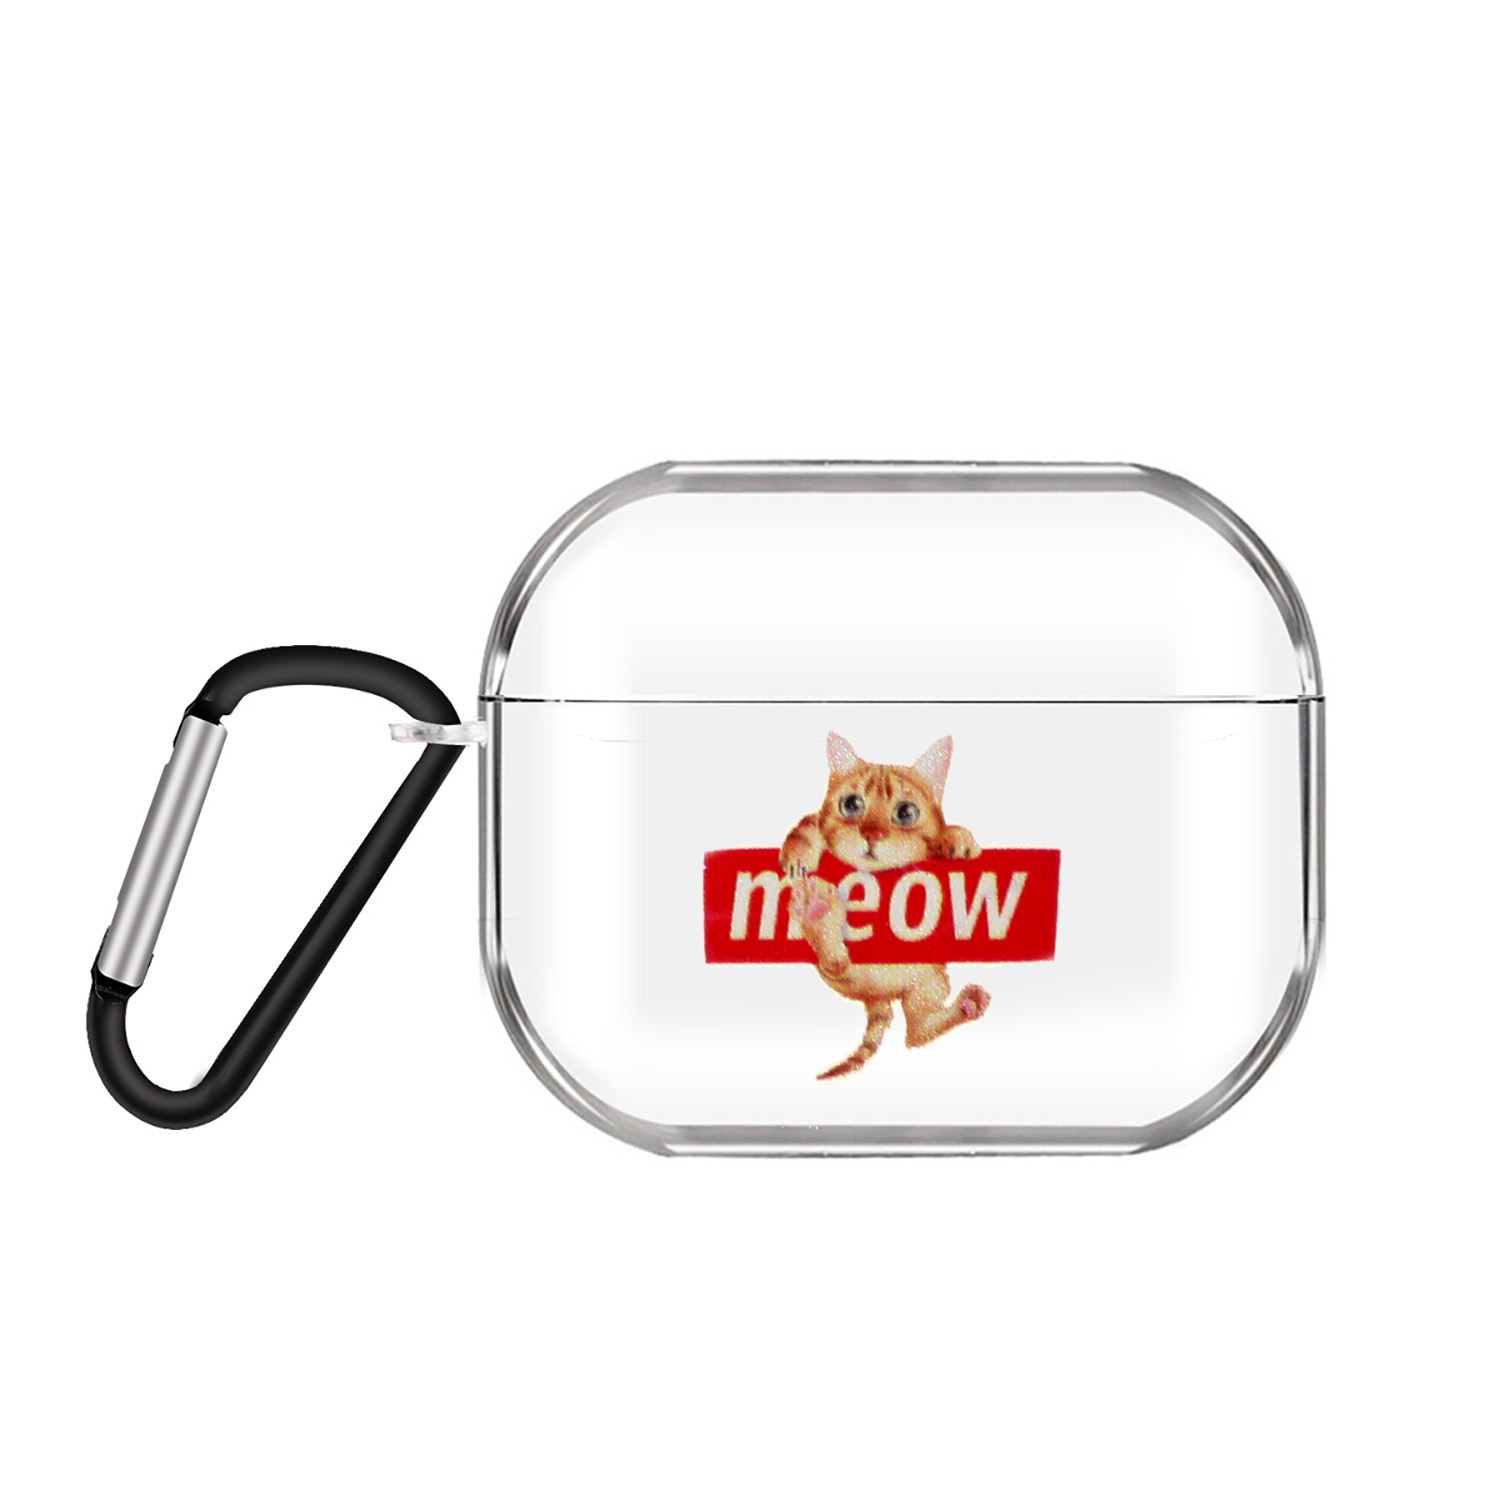 For AirPods Pro Headphones Case Clear Cute Earphone Shell with Metal Hook Overall Protection Cover 19 cats